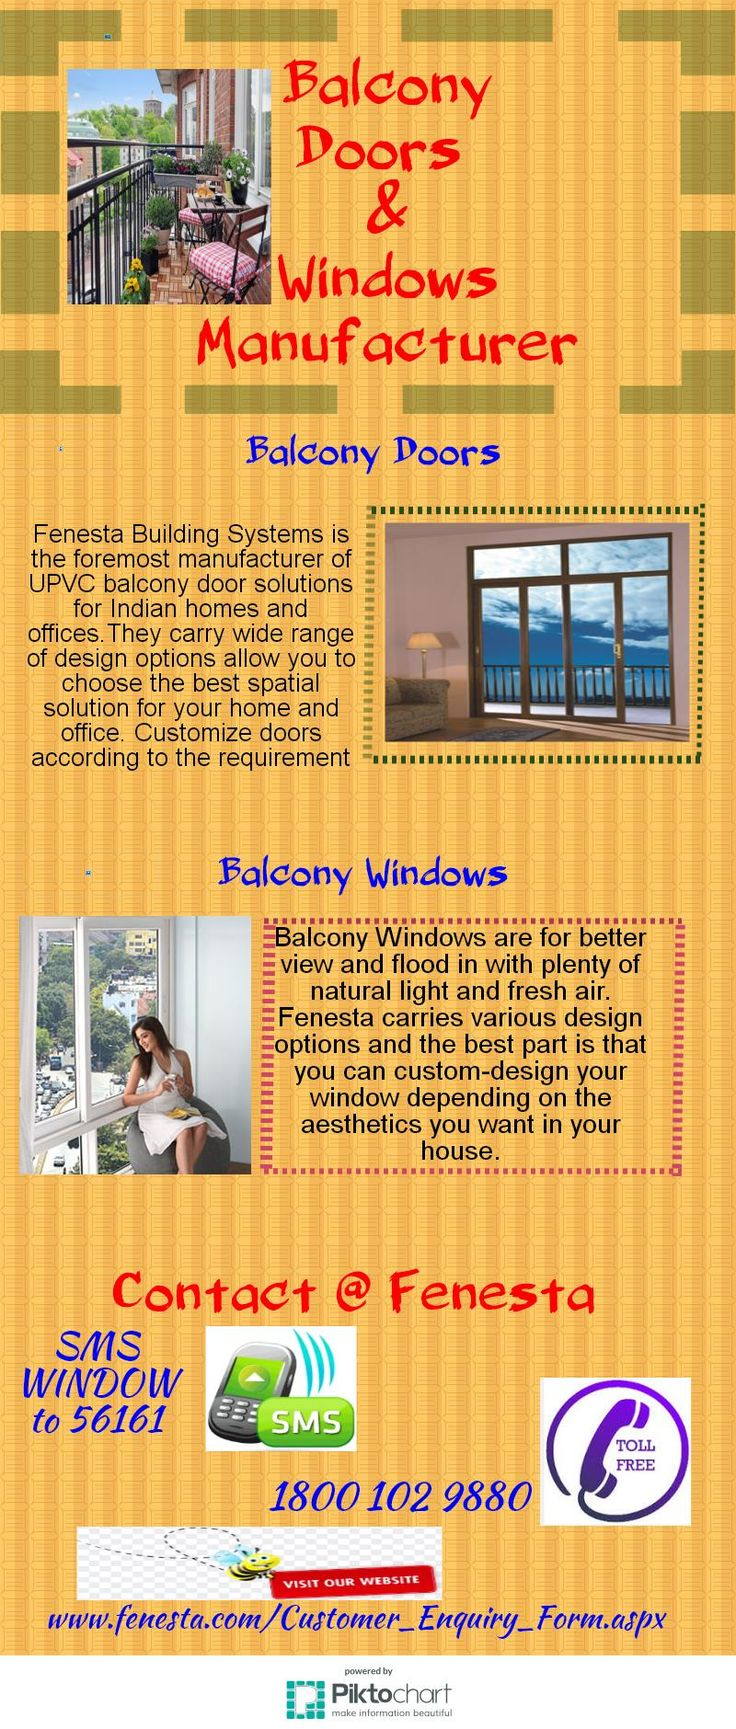 Fenesta upvc doors windows glass flooring - Style Your House Wit Cool Balcony Doors And Windows